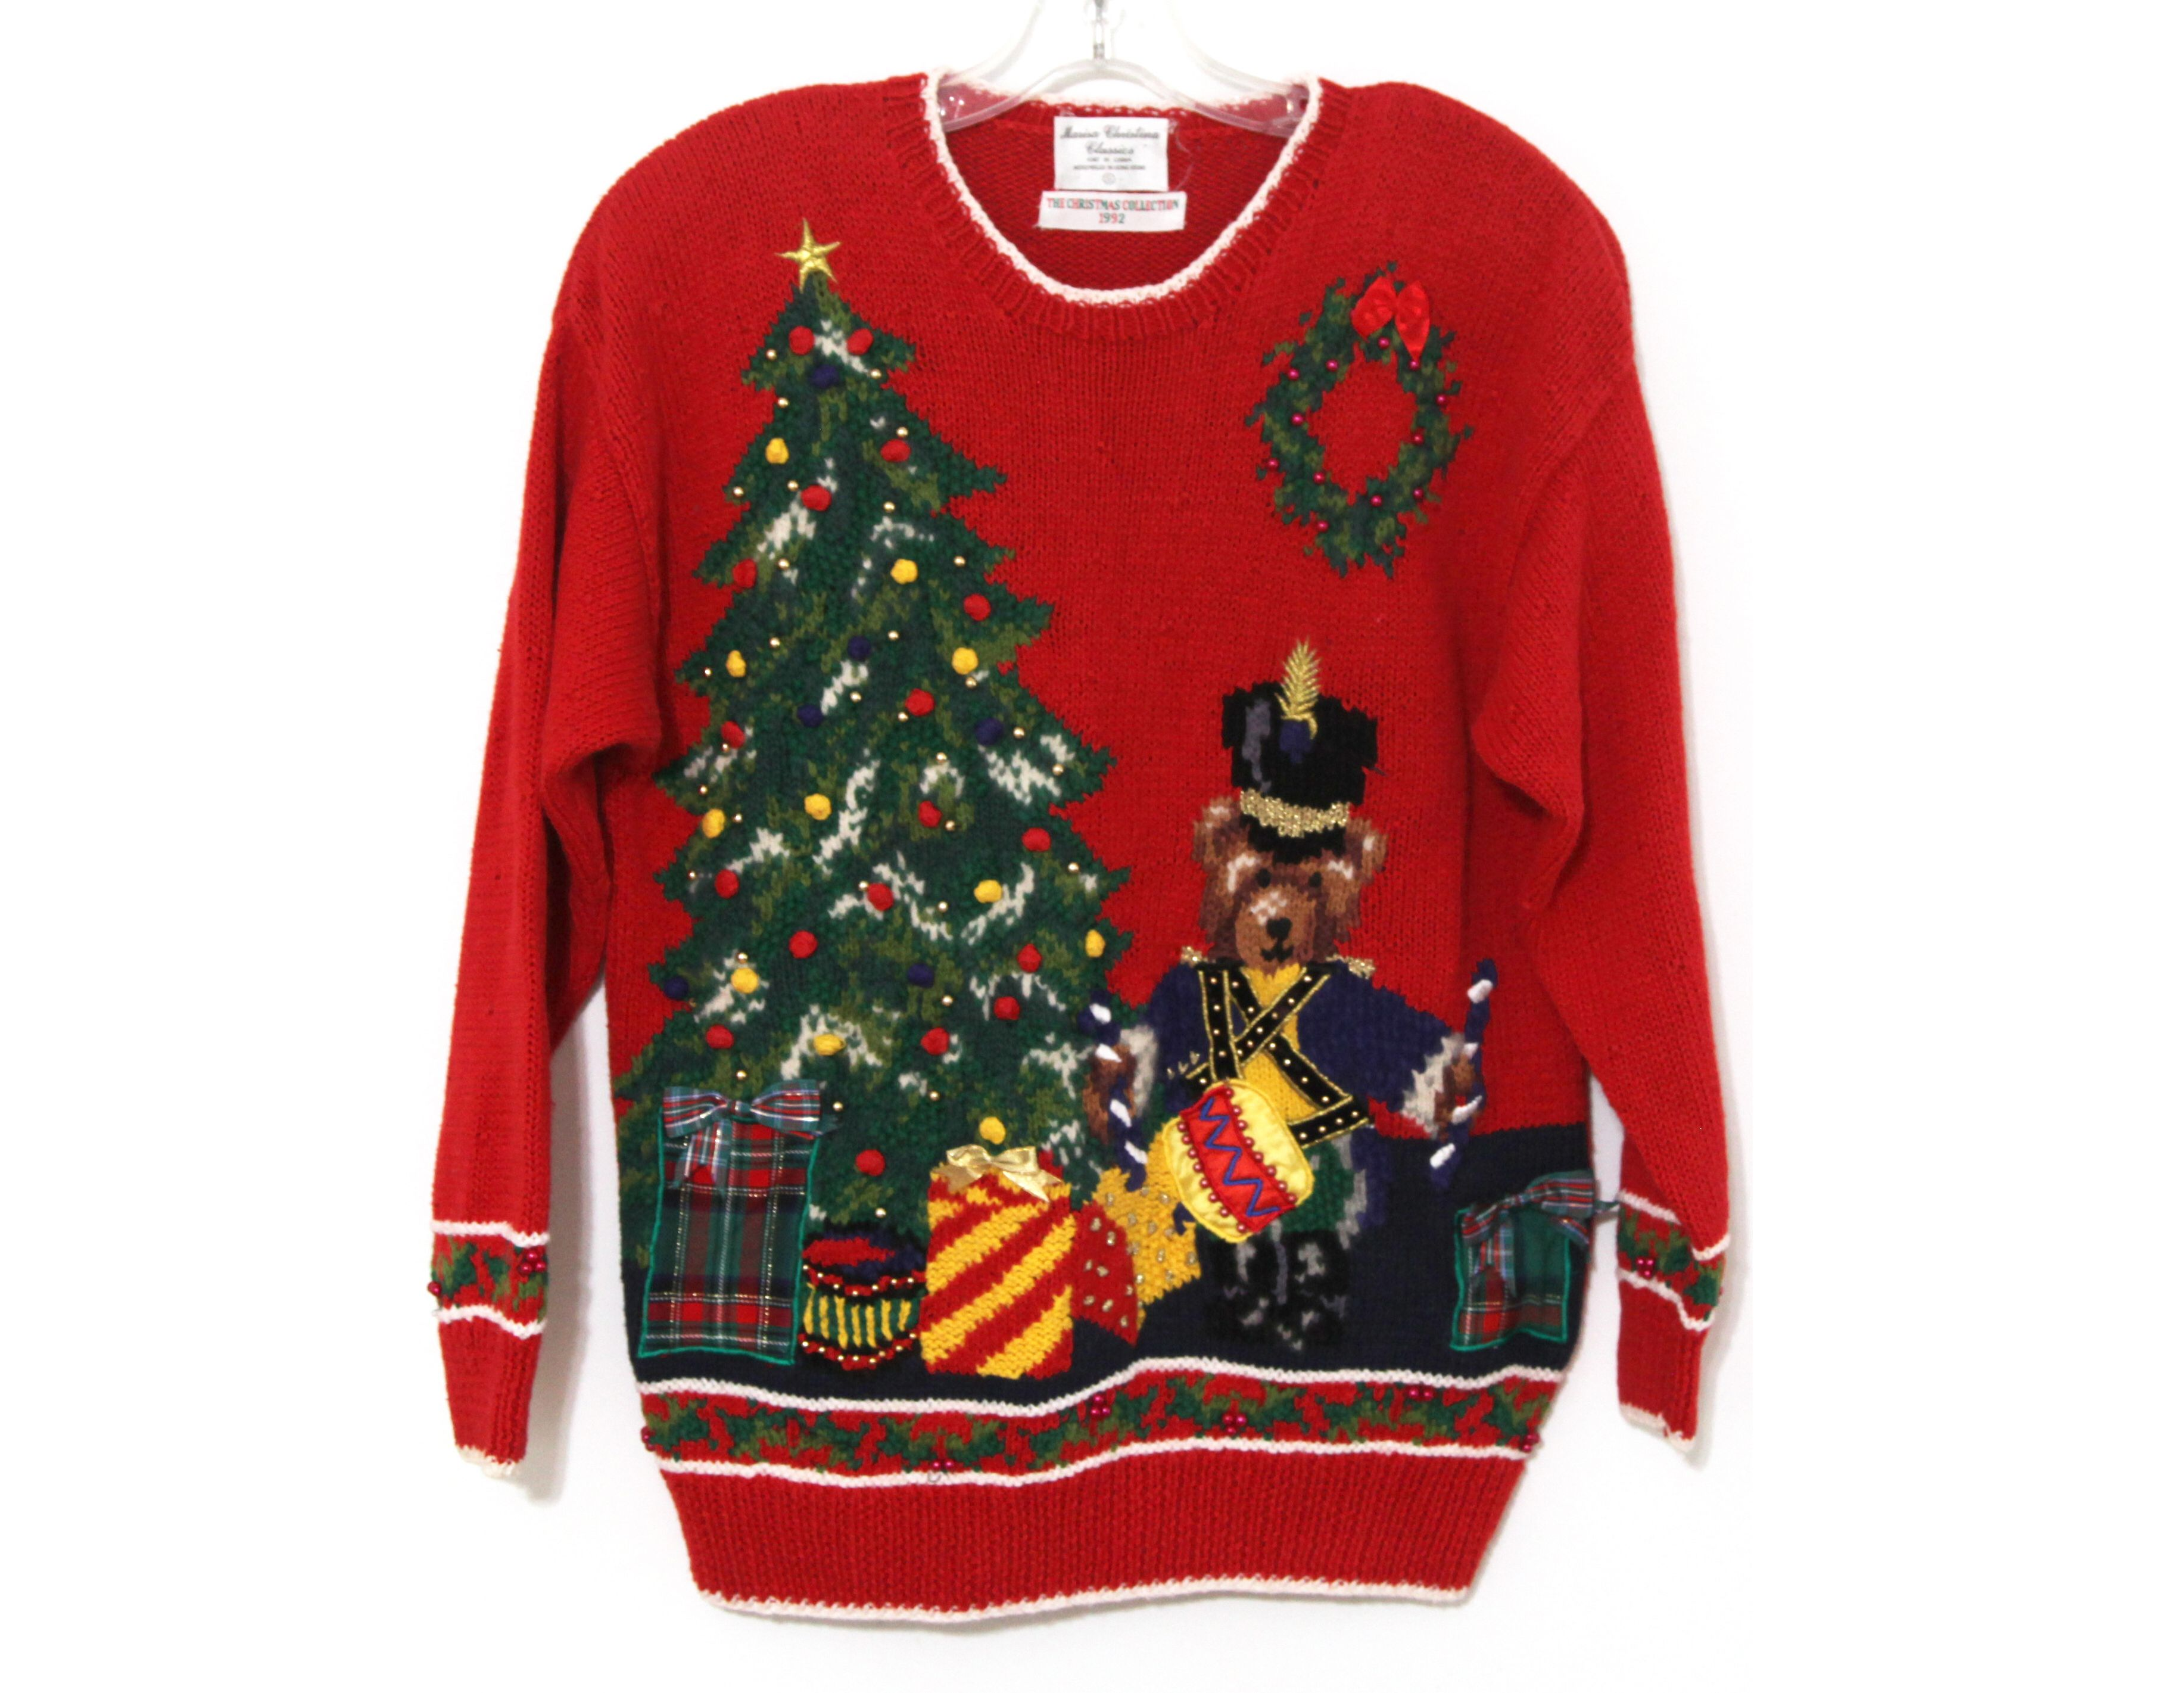 90s Christmas Sweaters.Pin On Vintage Christmas Sweaters